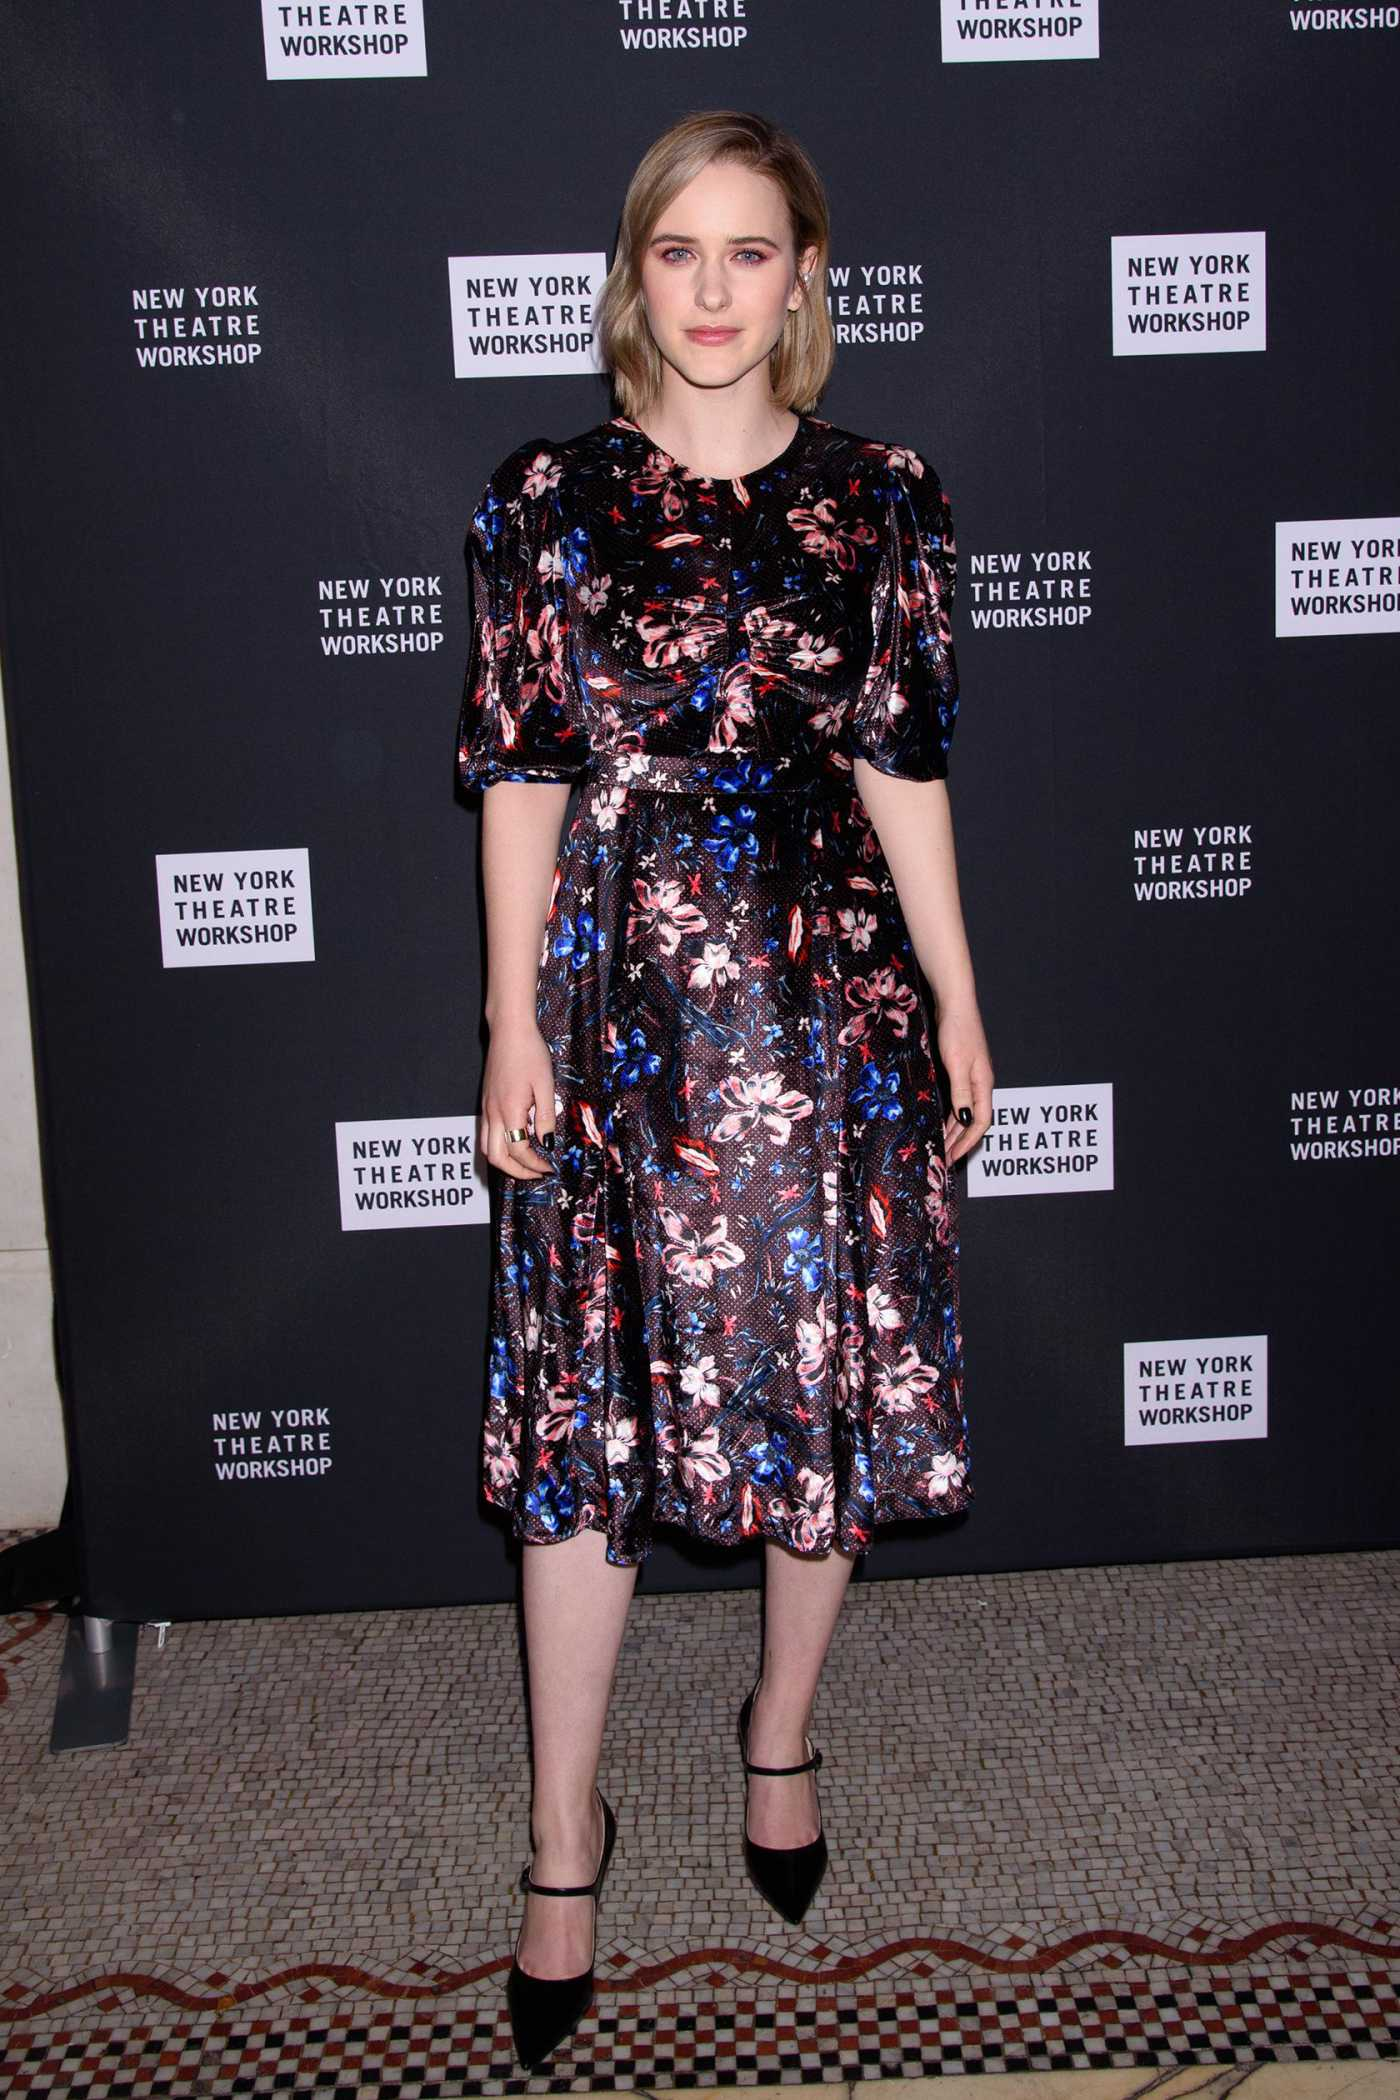 Rachel Brosnahan Attends New York Theater Workshop Gala in New York 02/03/2020